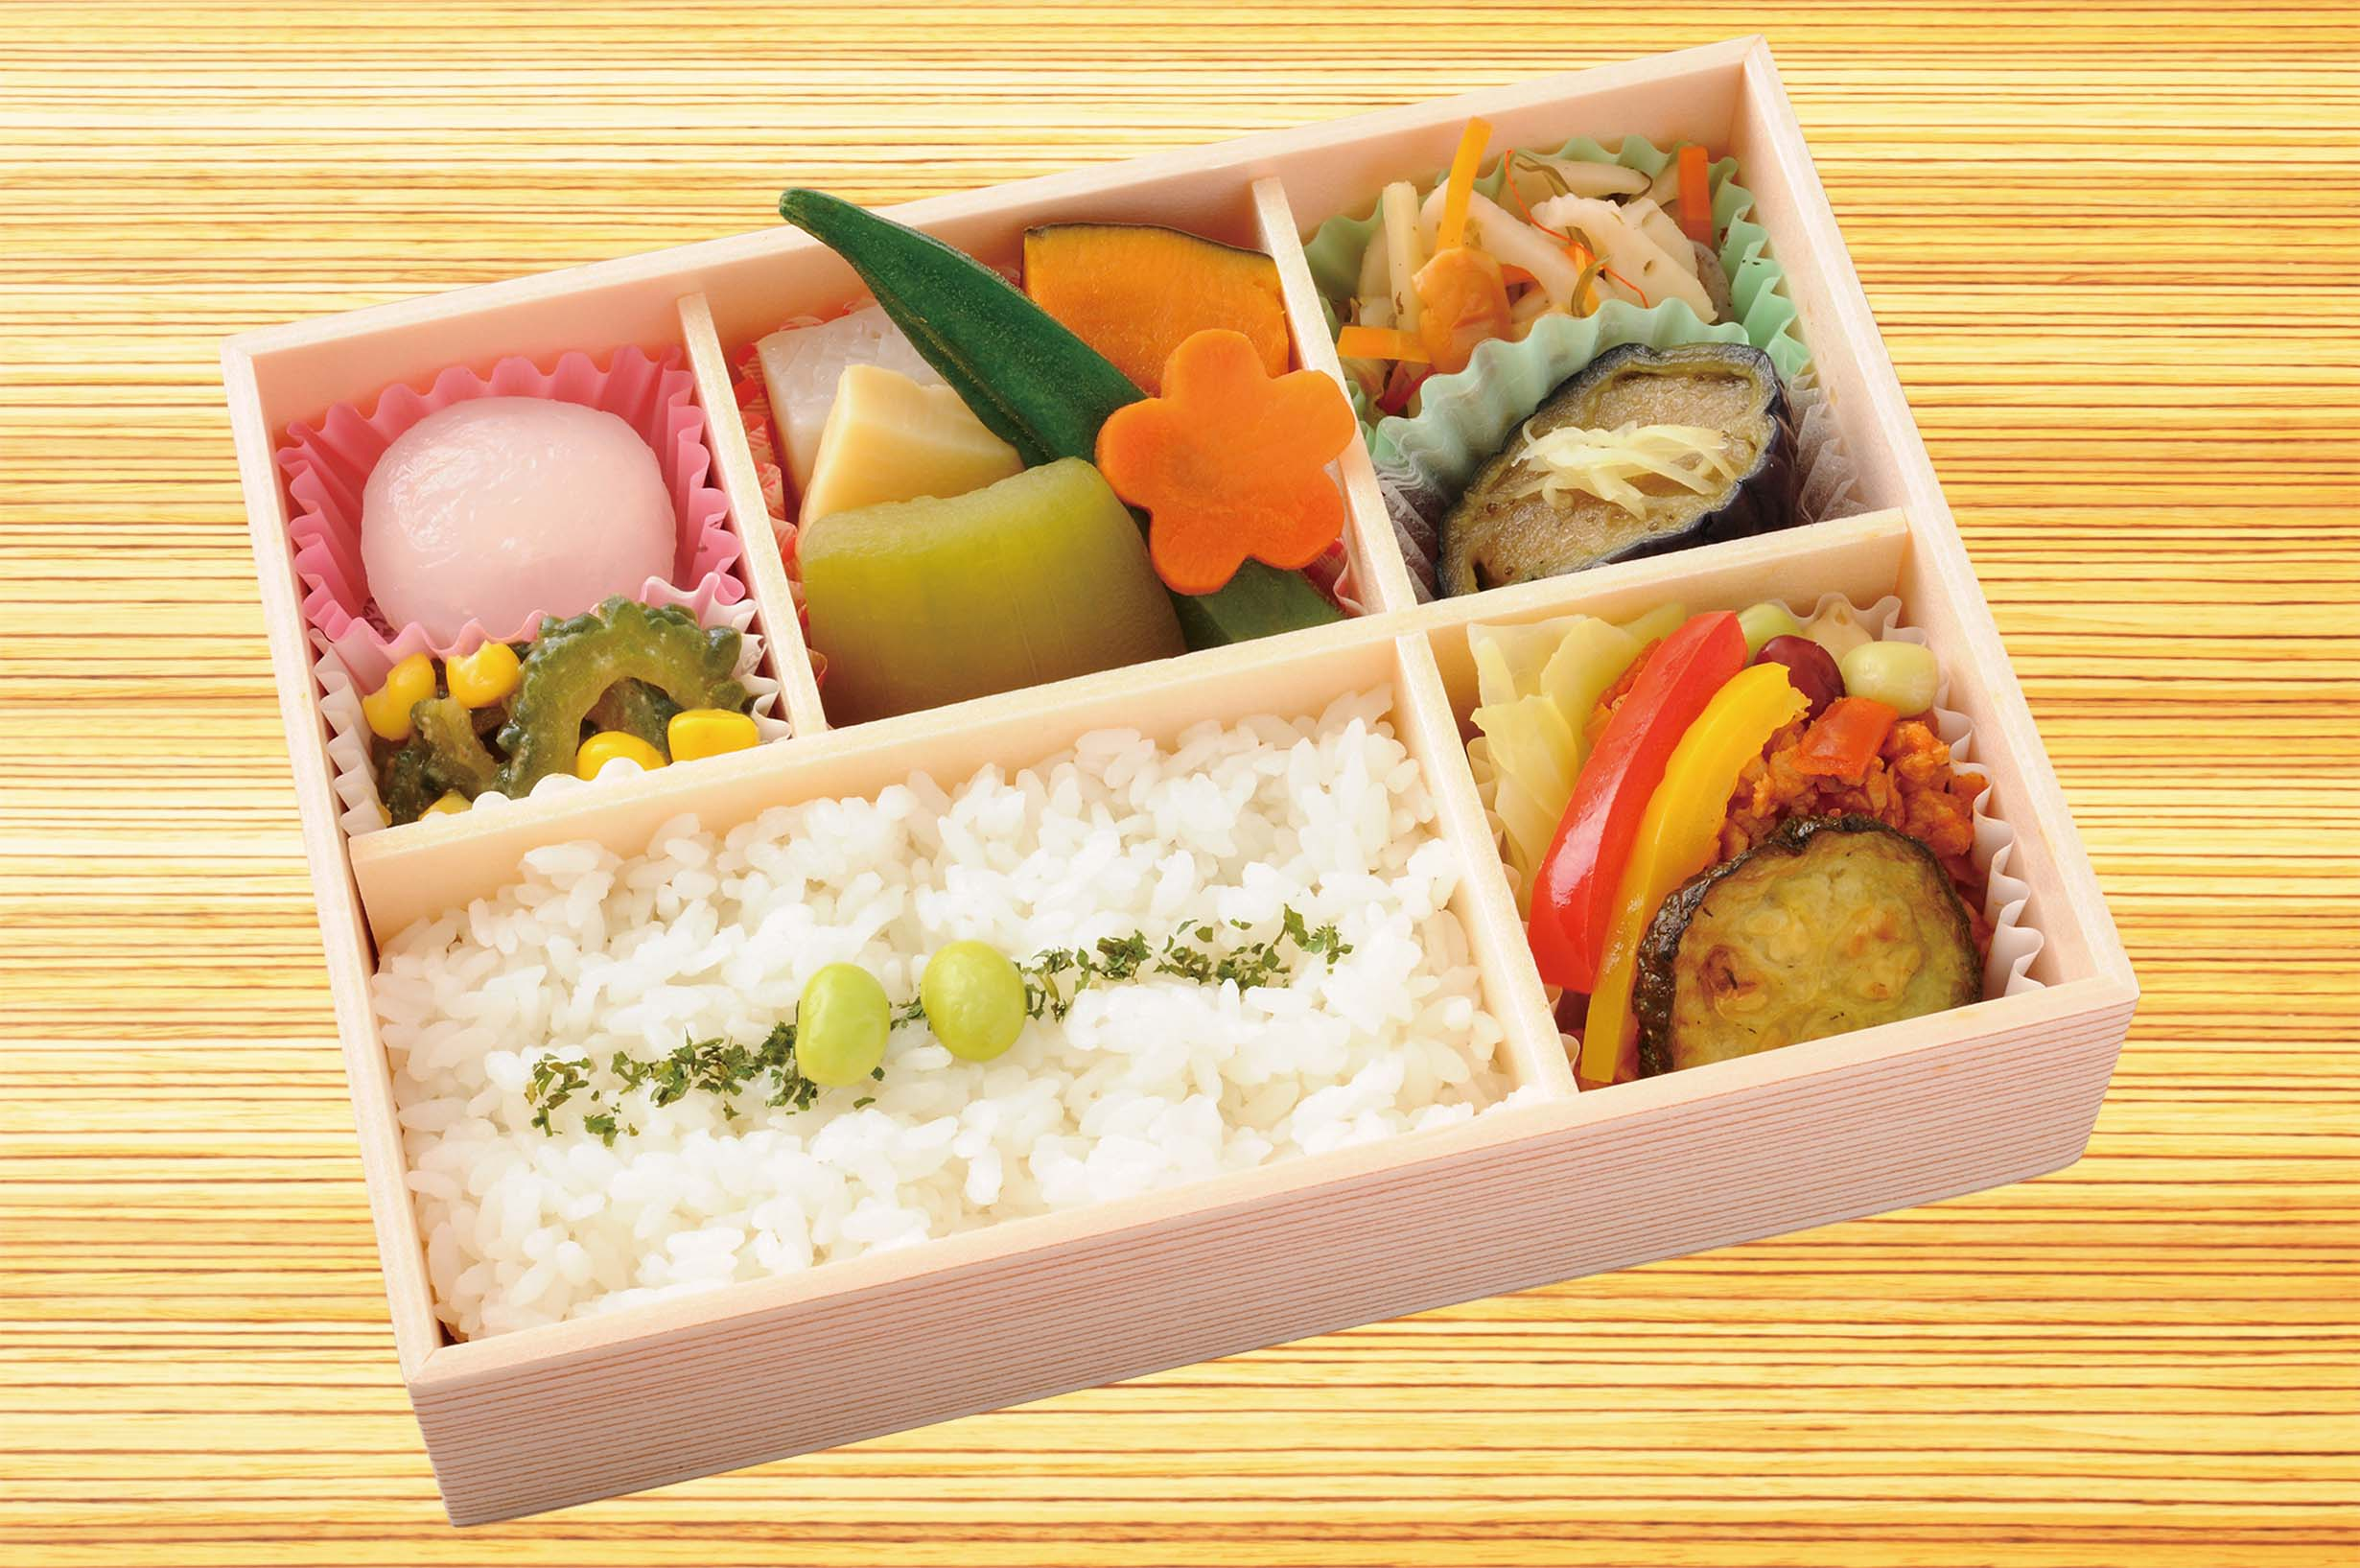 A lot of summer vegetables lunches (May 21, 2018 beginning to sell)